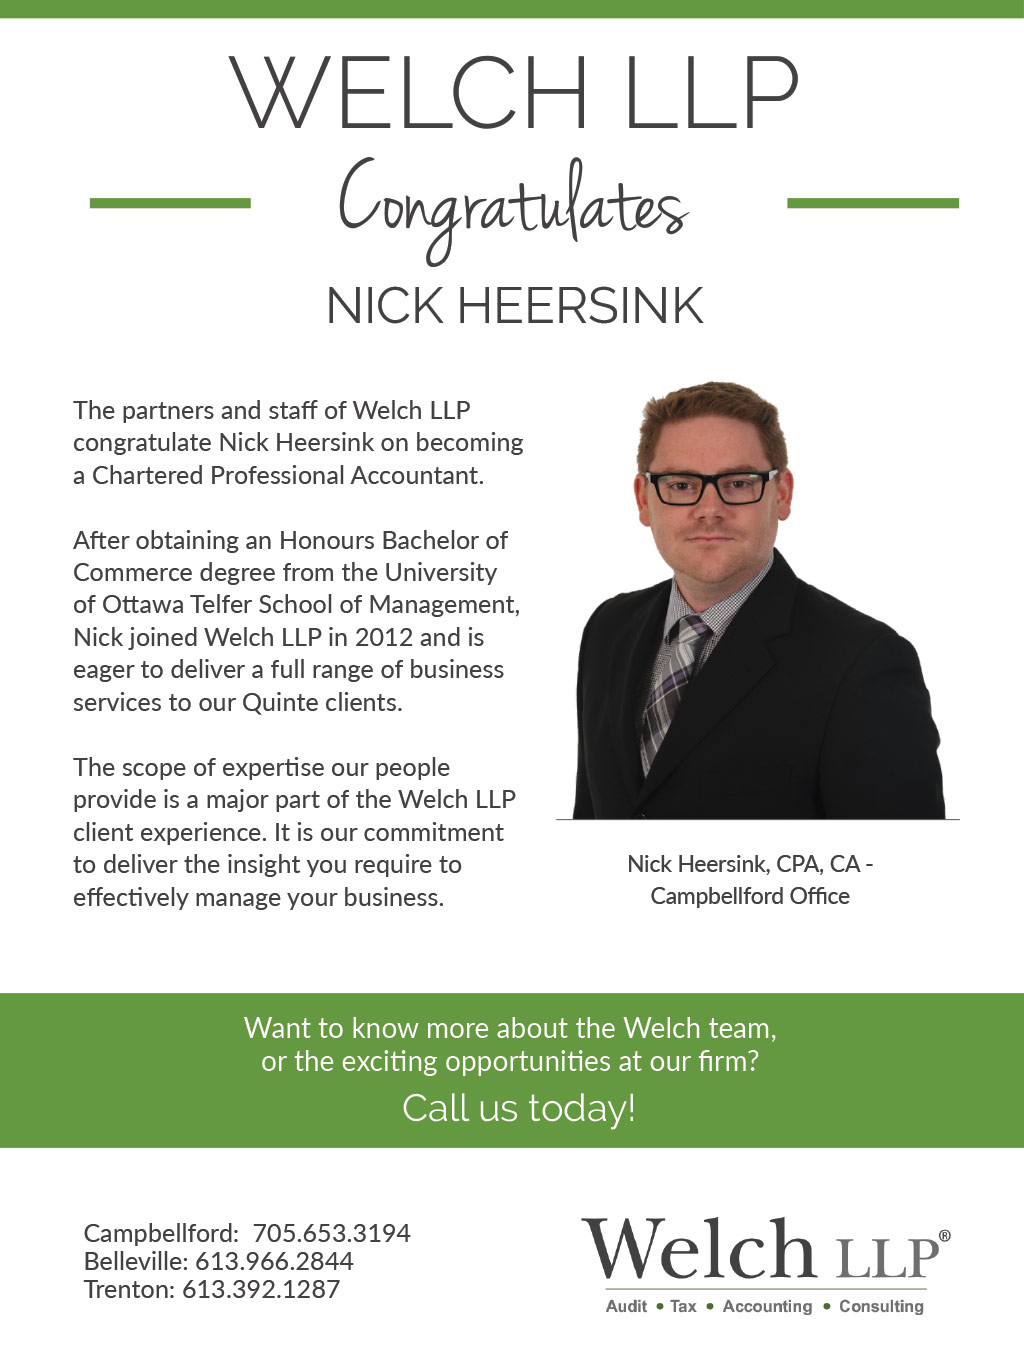 Congratulations to our newest CPA, Nick Heersink